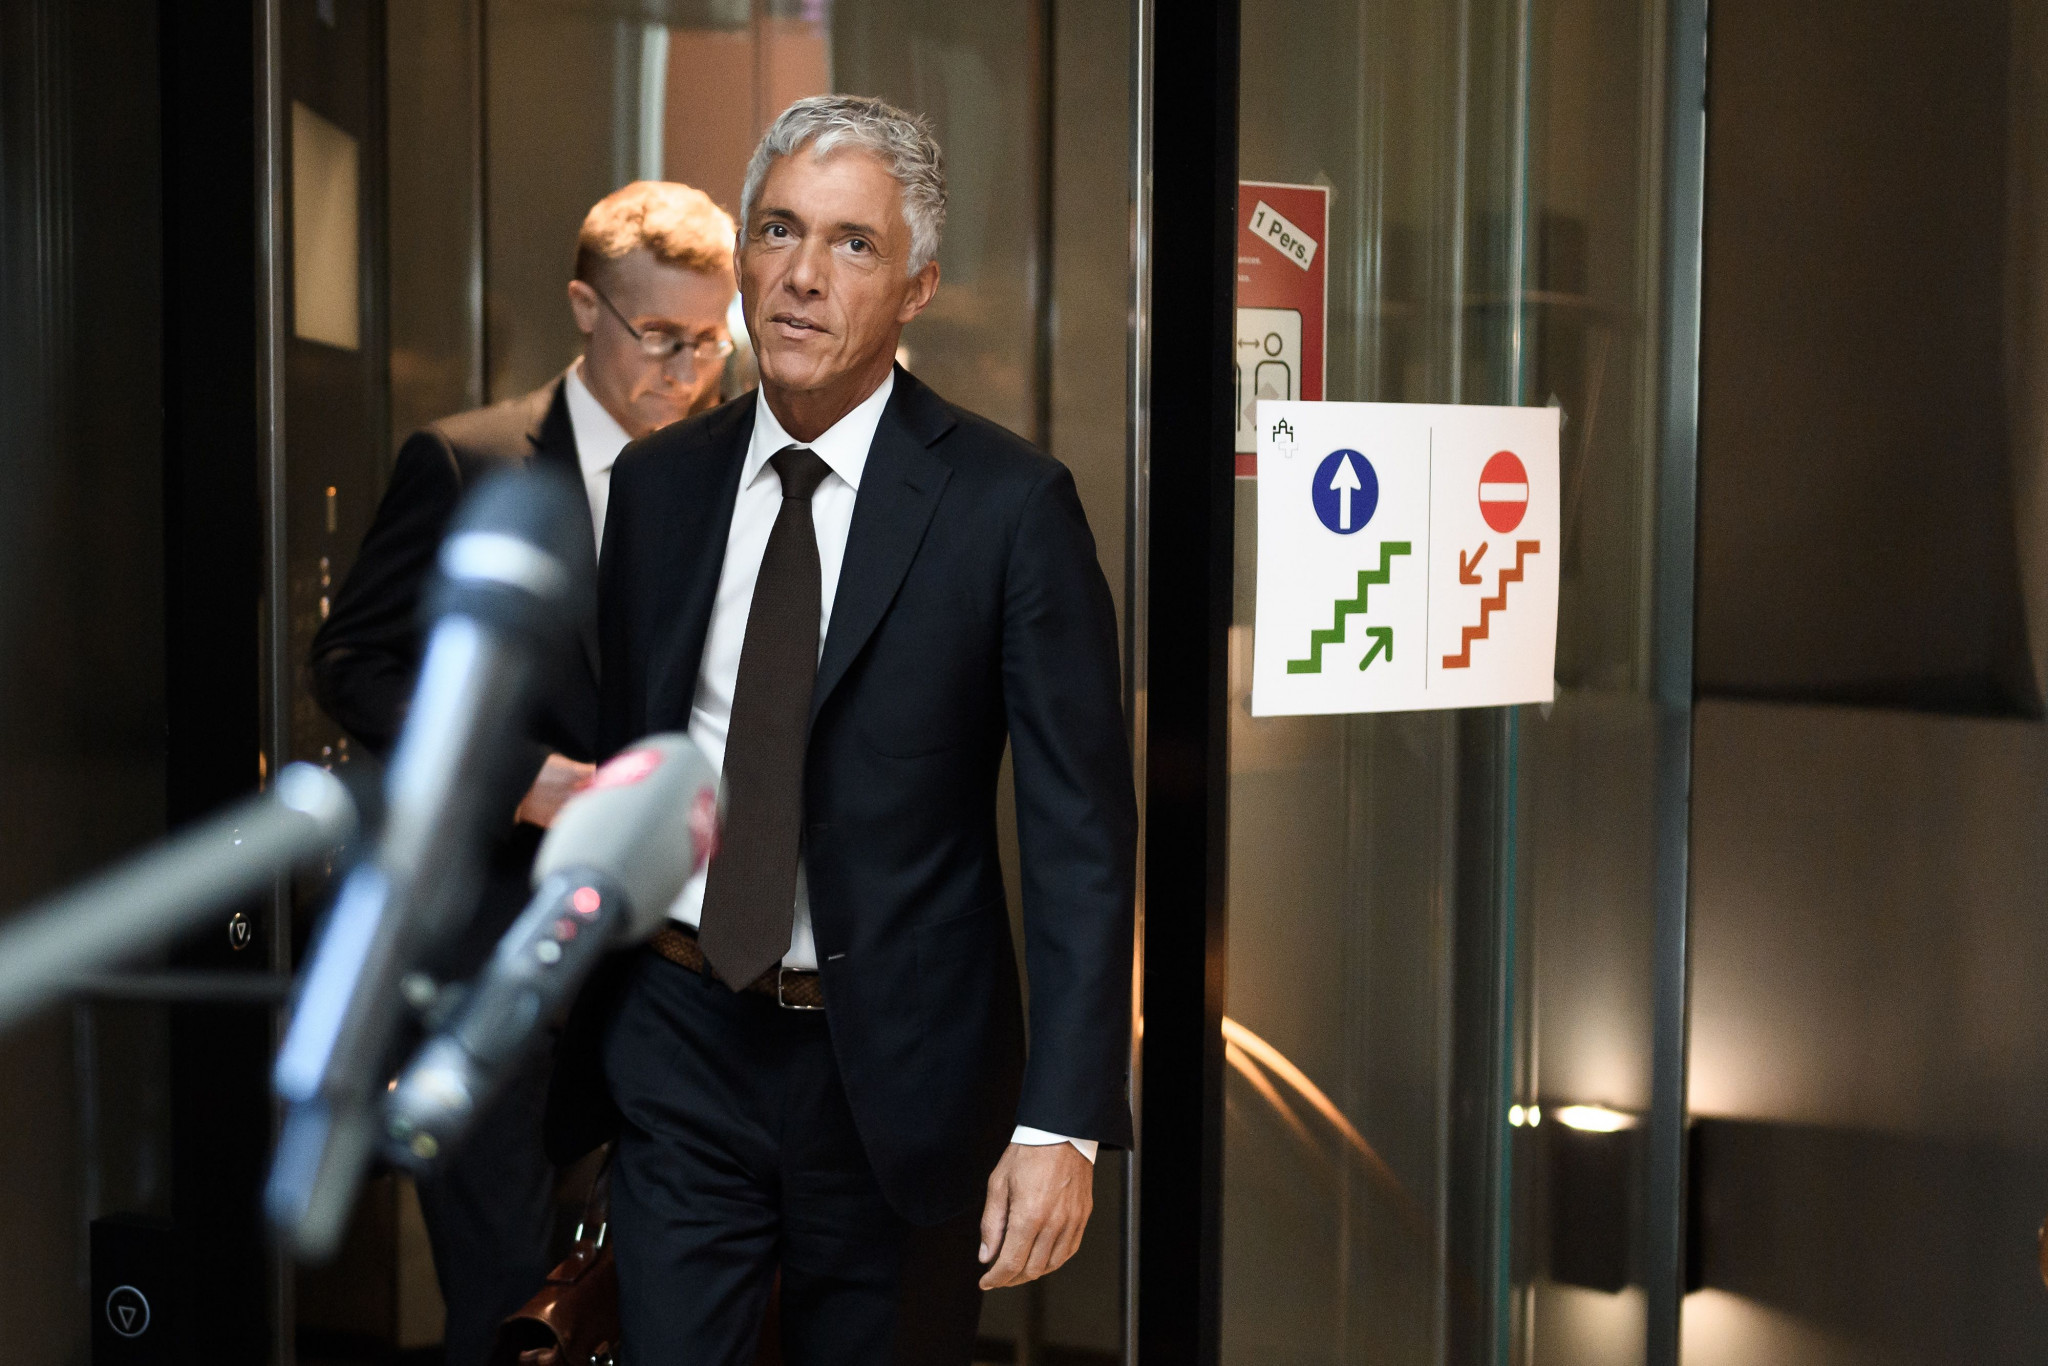 Swiss attorney general Michael Lauber is already the subject of impeachment proceedings ©Getty Images